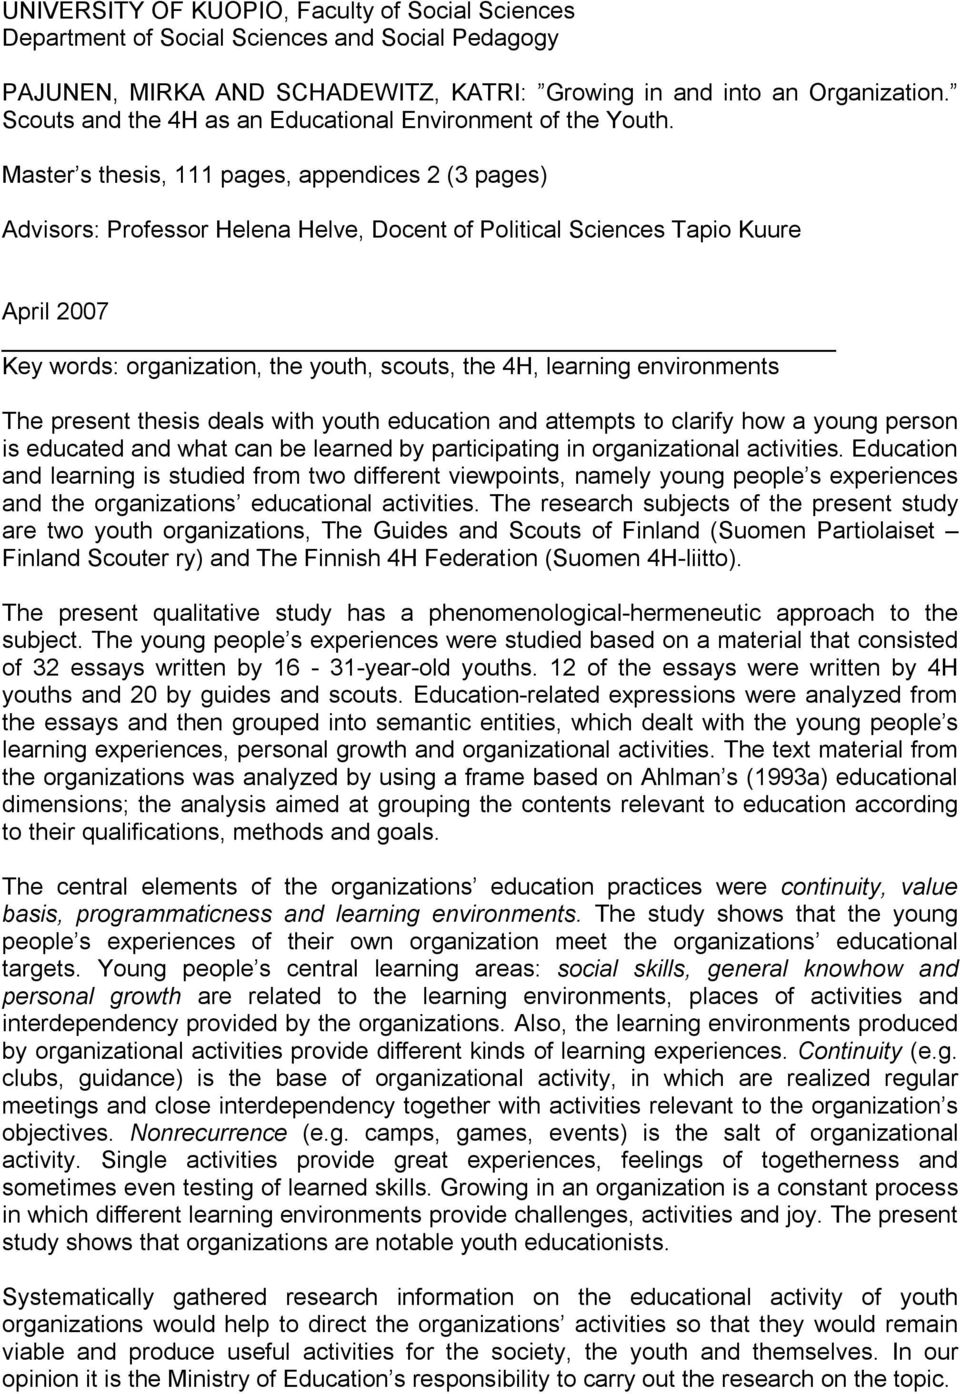 Master s thesis, 111 pages, appendices 2 (3 pages) Advisors: Professor Helena Helve, Docent of Political Sciences Tapio Kuure April 2007 Key words: organization, the youth, scouts, the 4H, learning